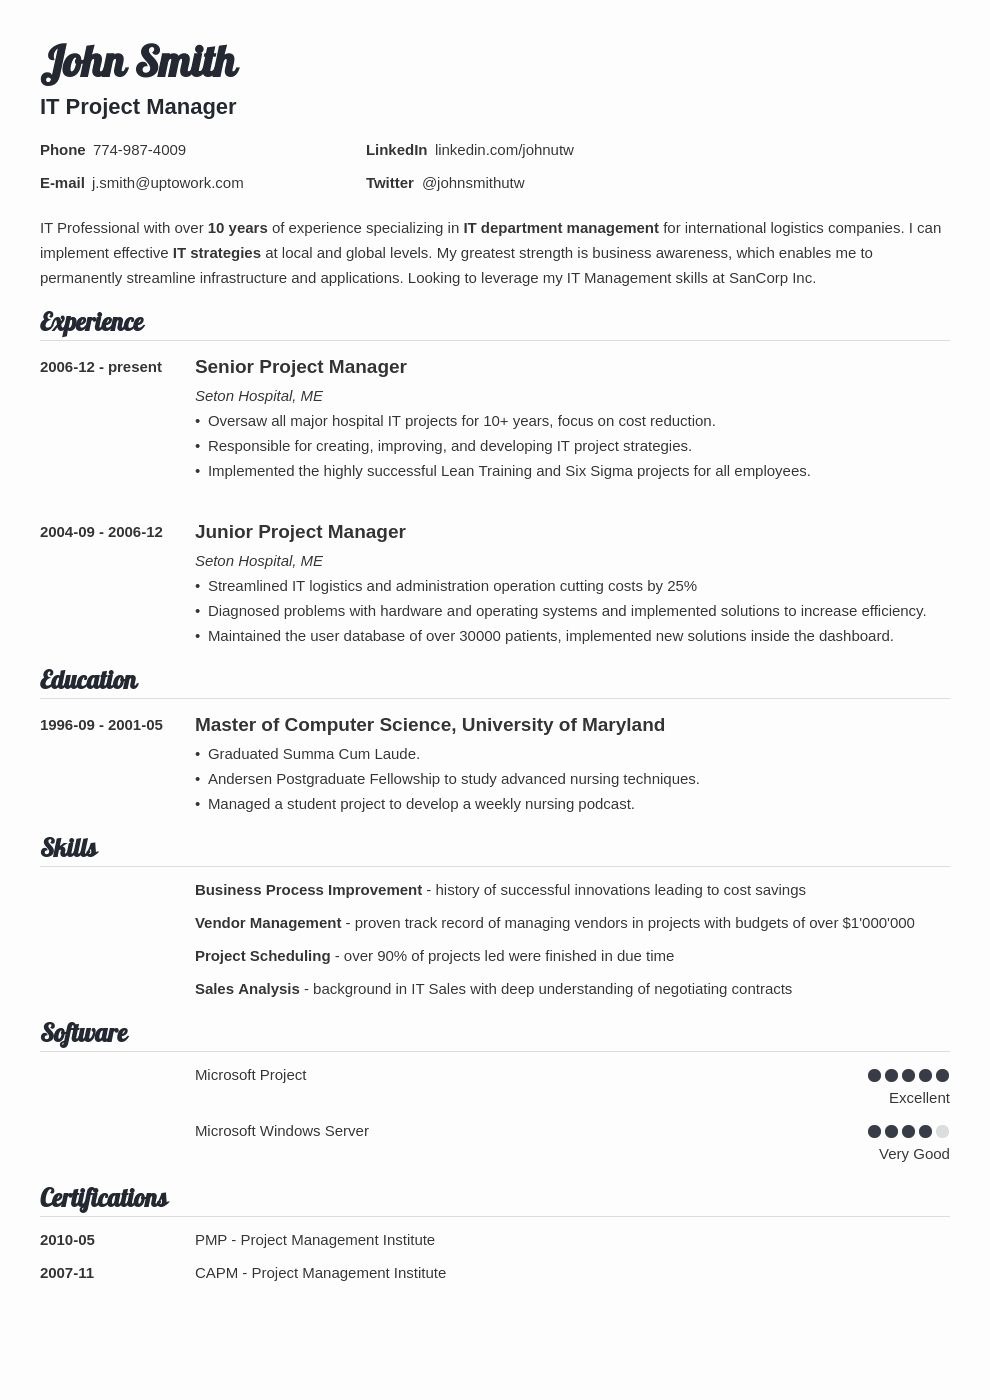 Download Free Professional Resume Templates in 2020